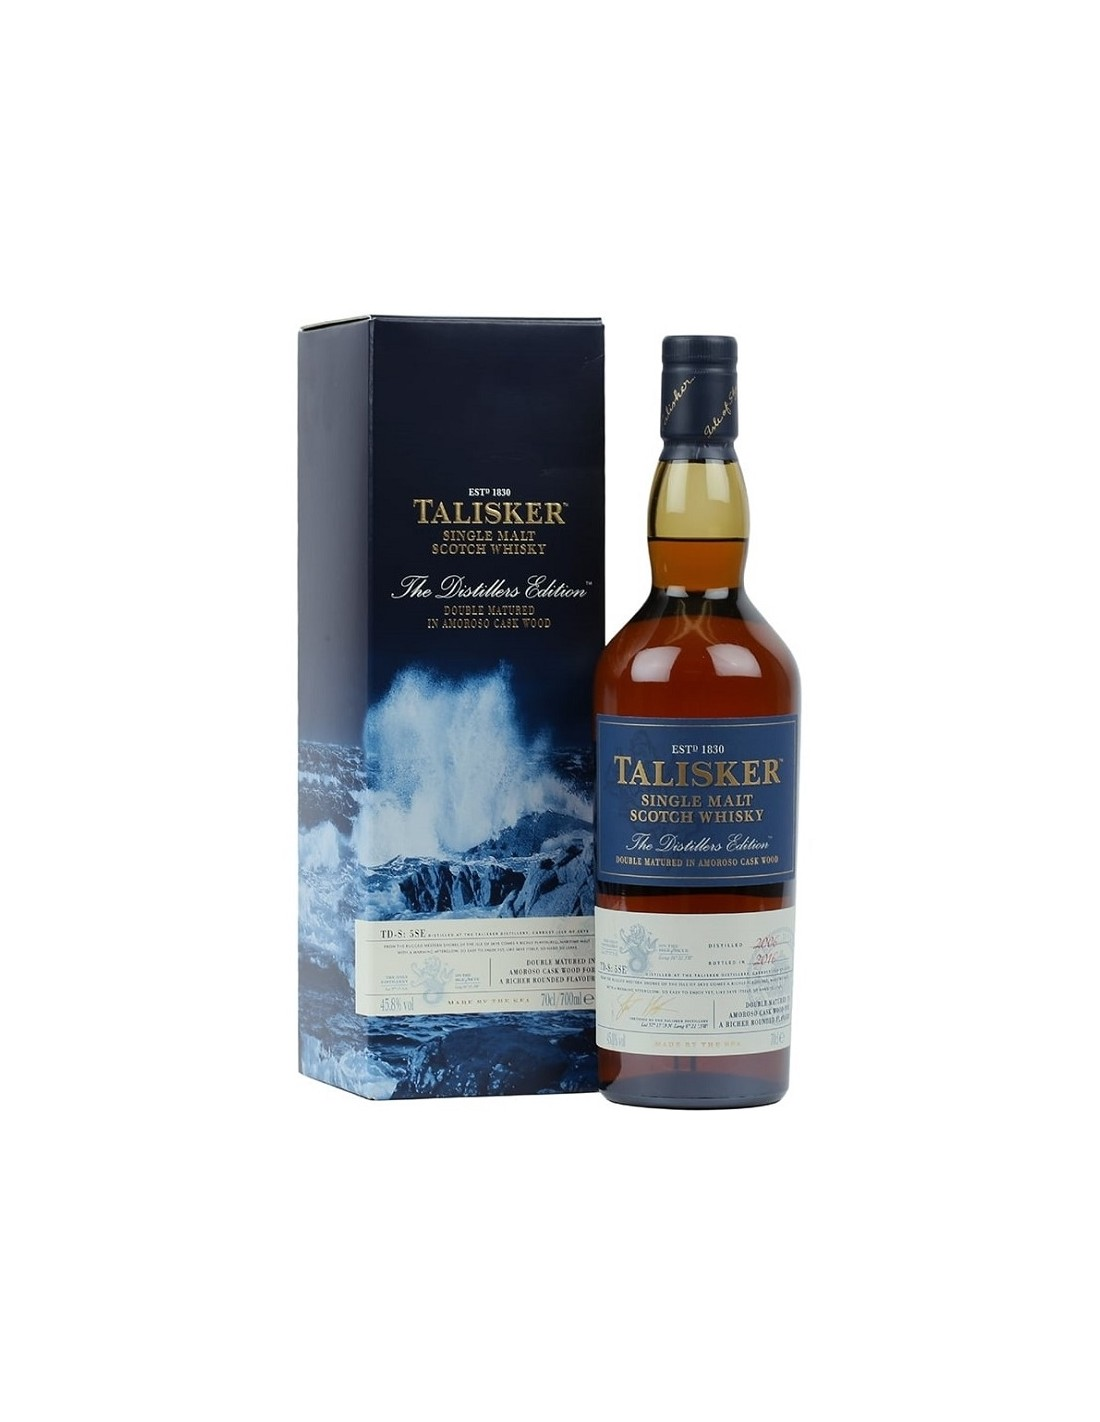 Whisky Talisker Distiller's Edition, 45.8% alc., 0.7L, Scotia